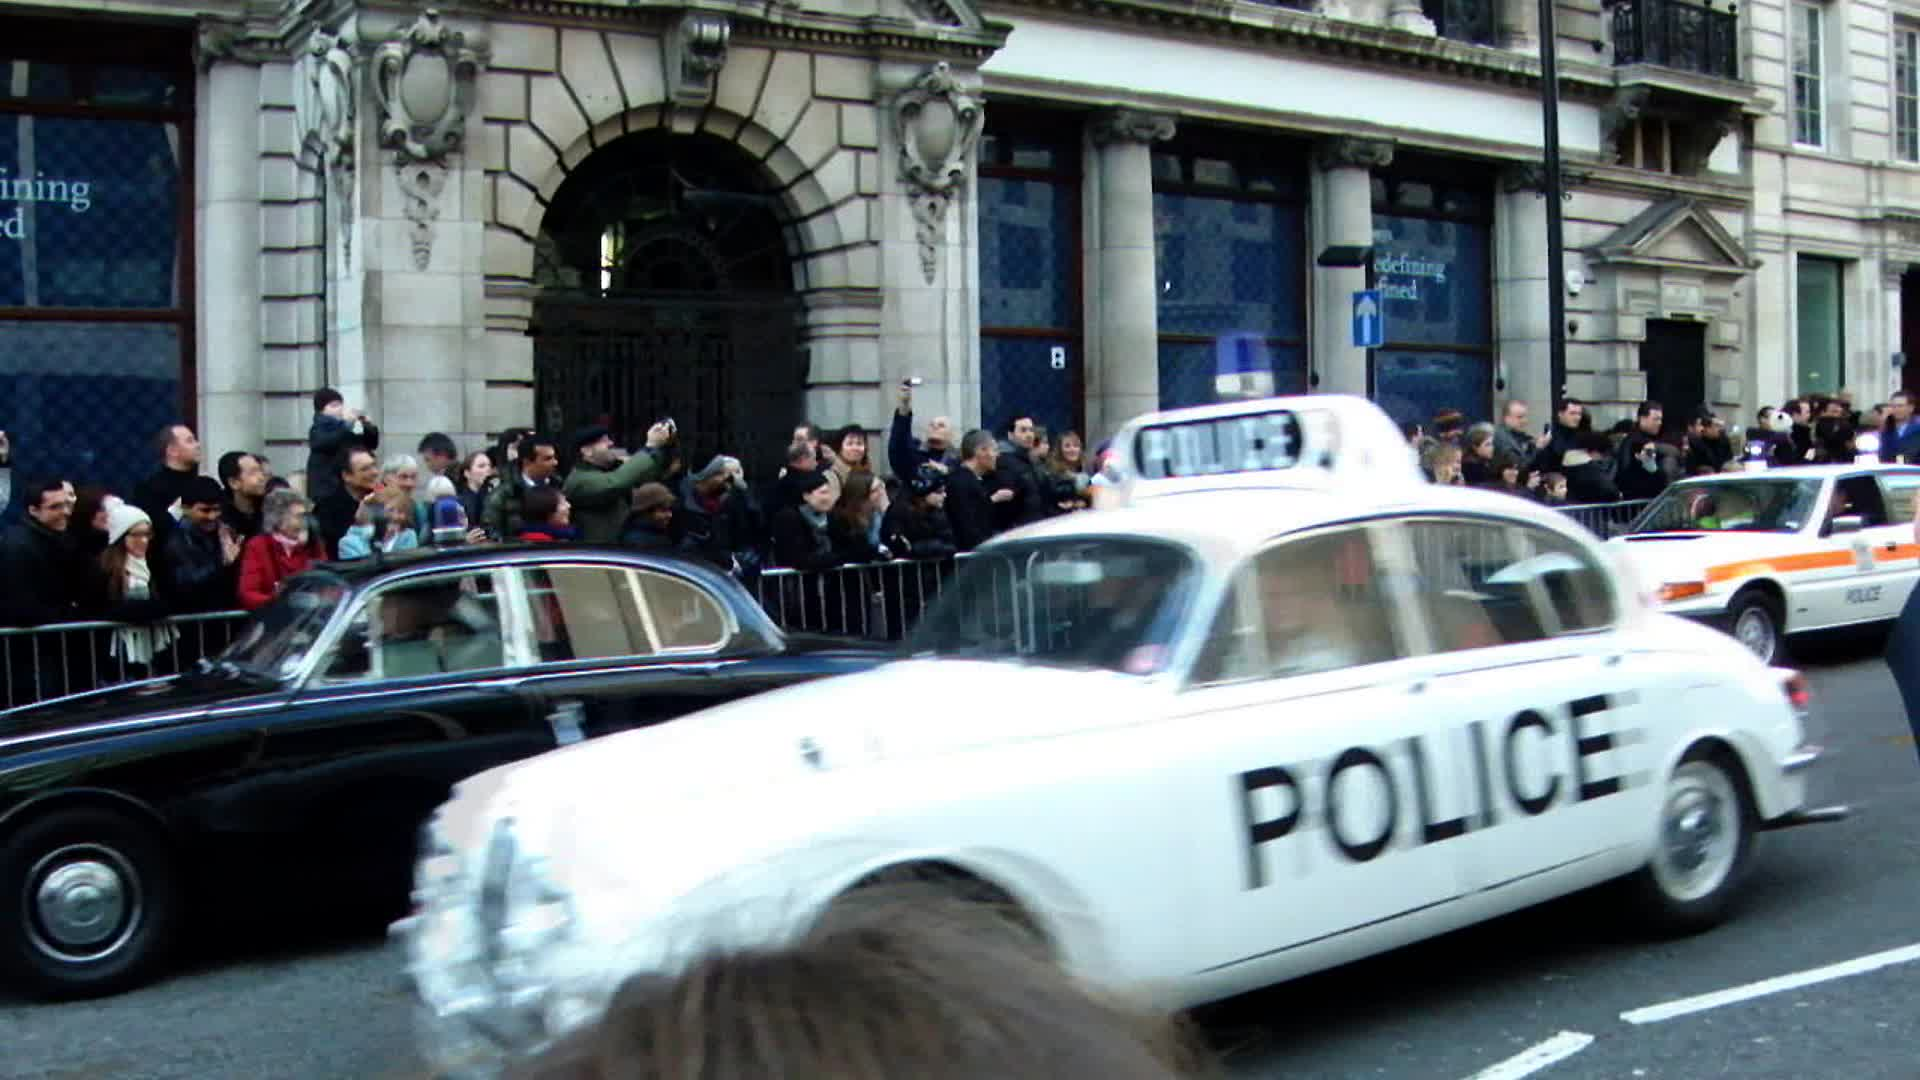 New Year's Police Parade London